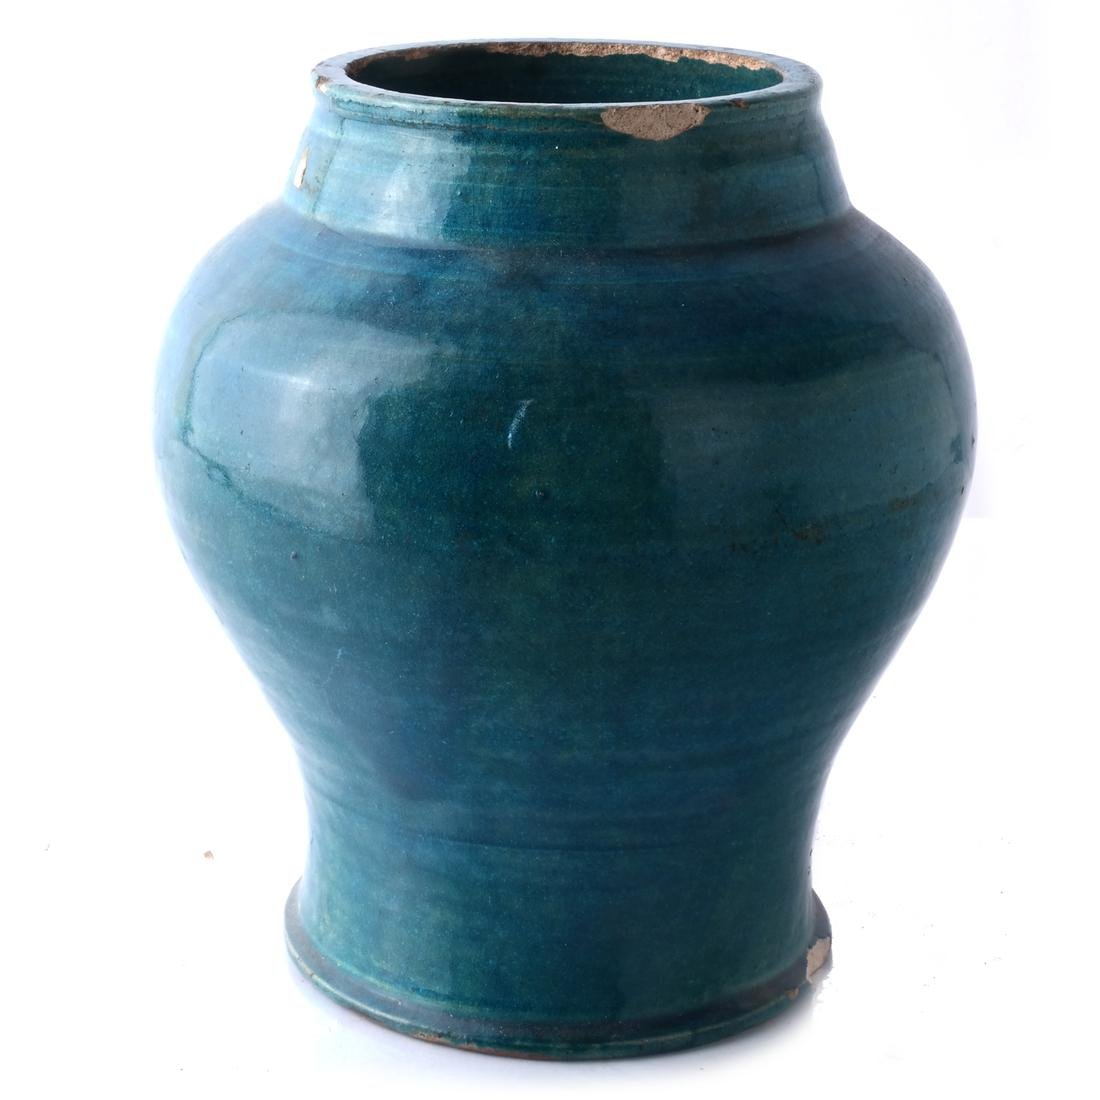 Chinese Ceramic Jar, Turquoise Colored